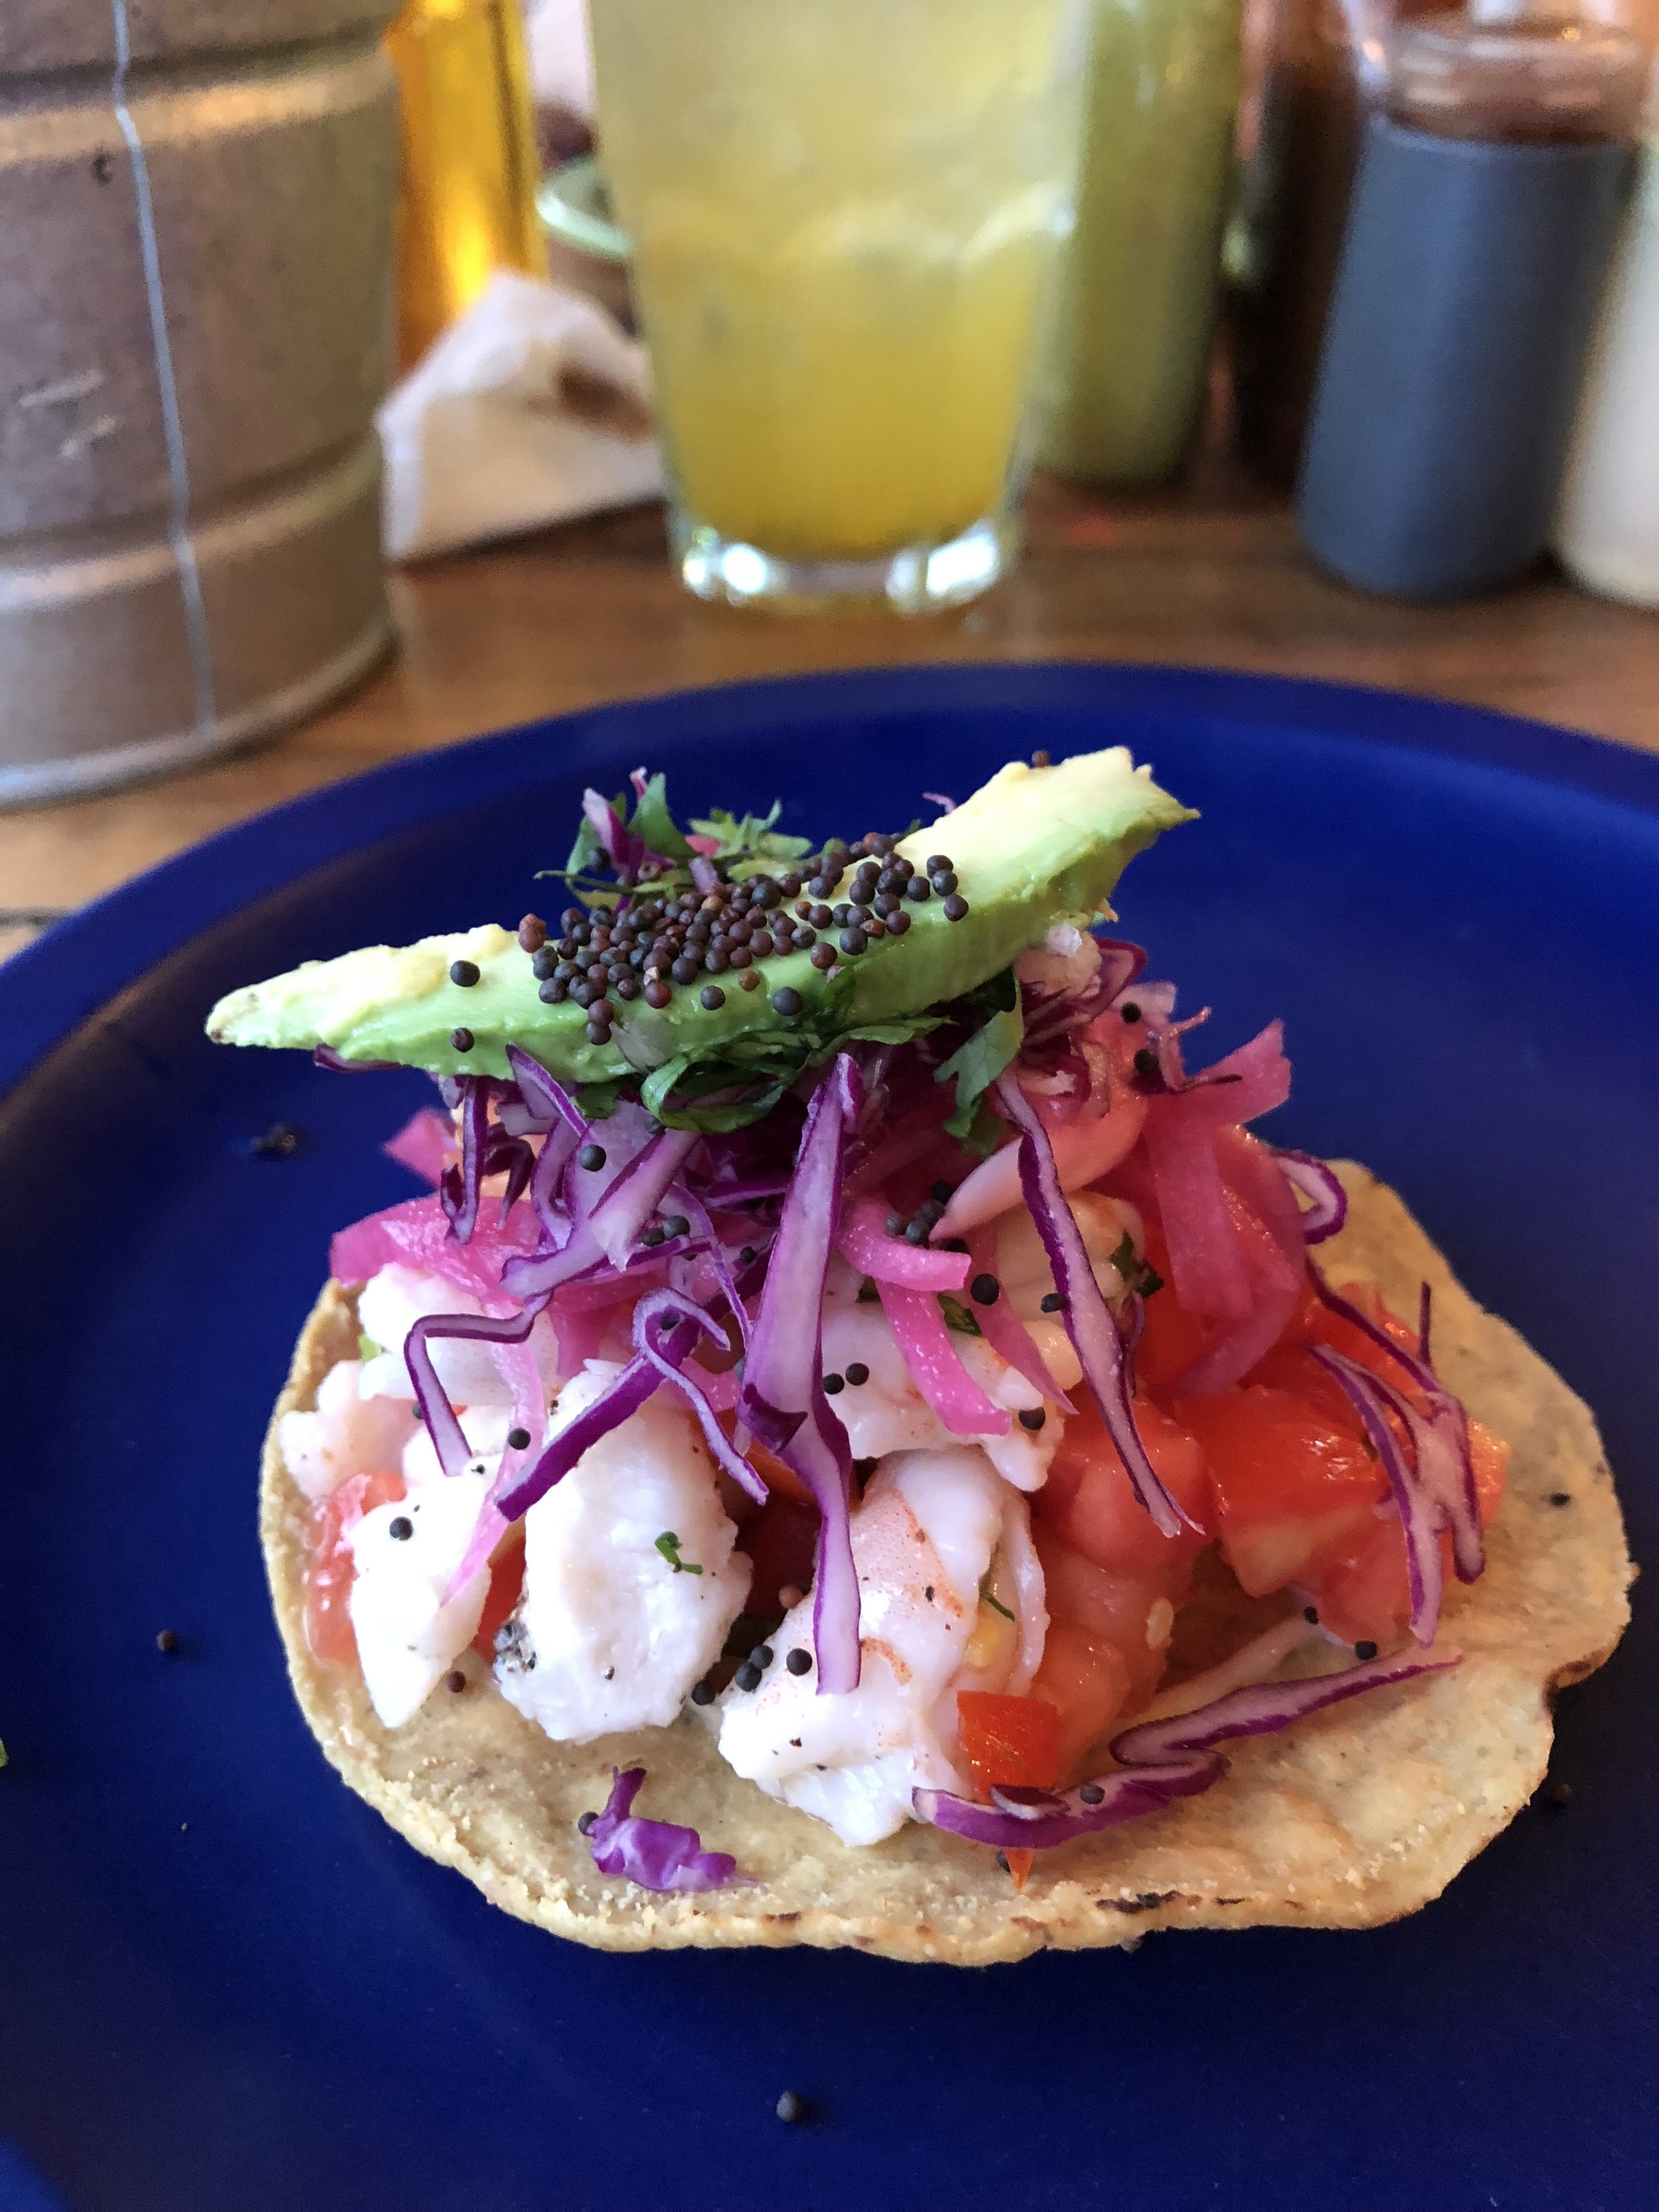 Ceviche tostada at Los Aguachilies